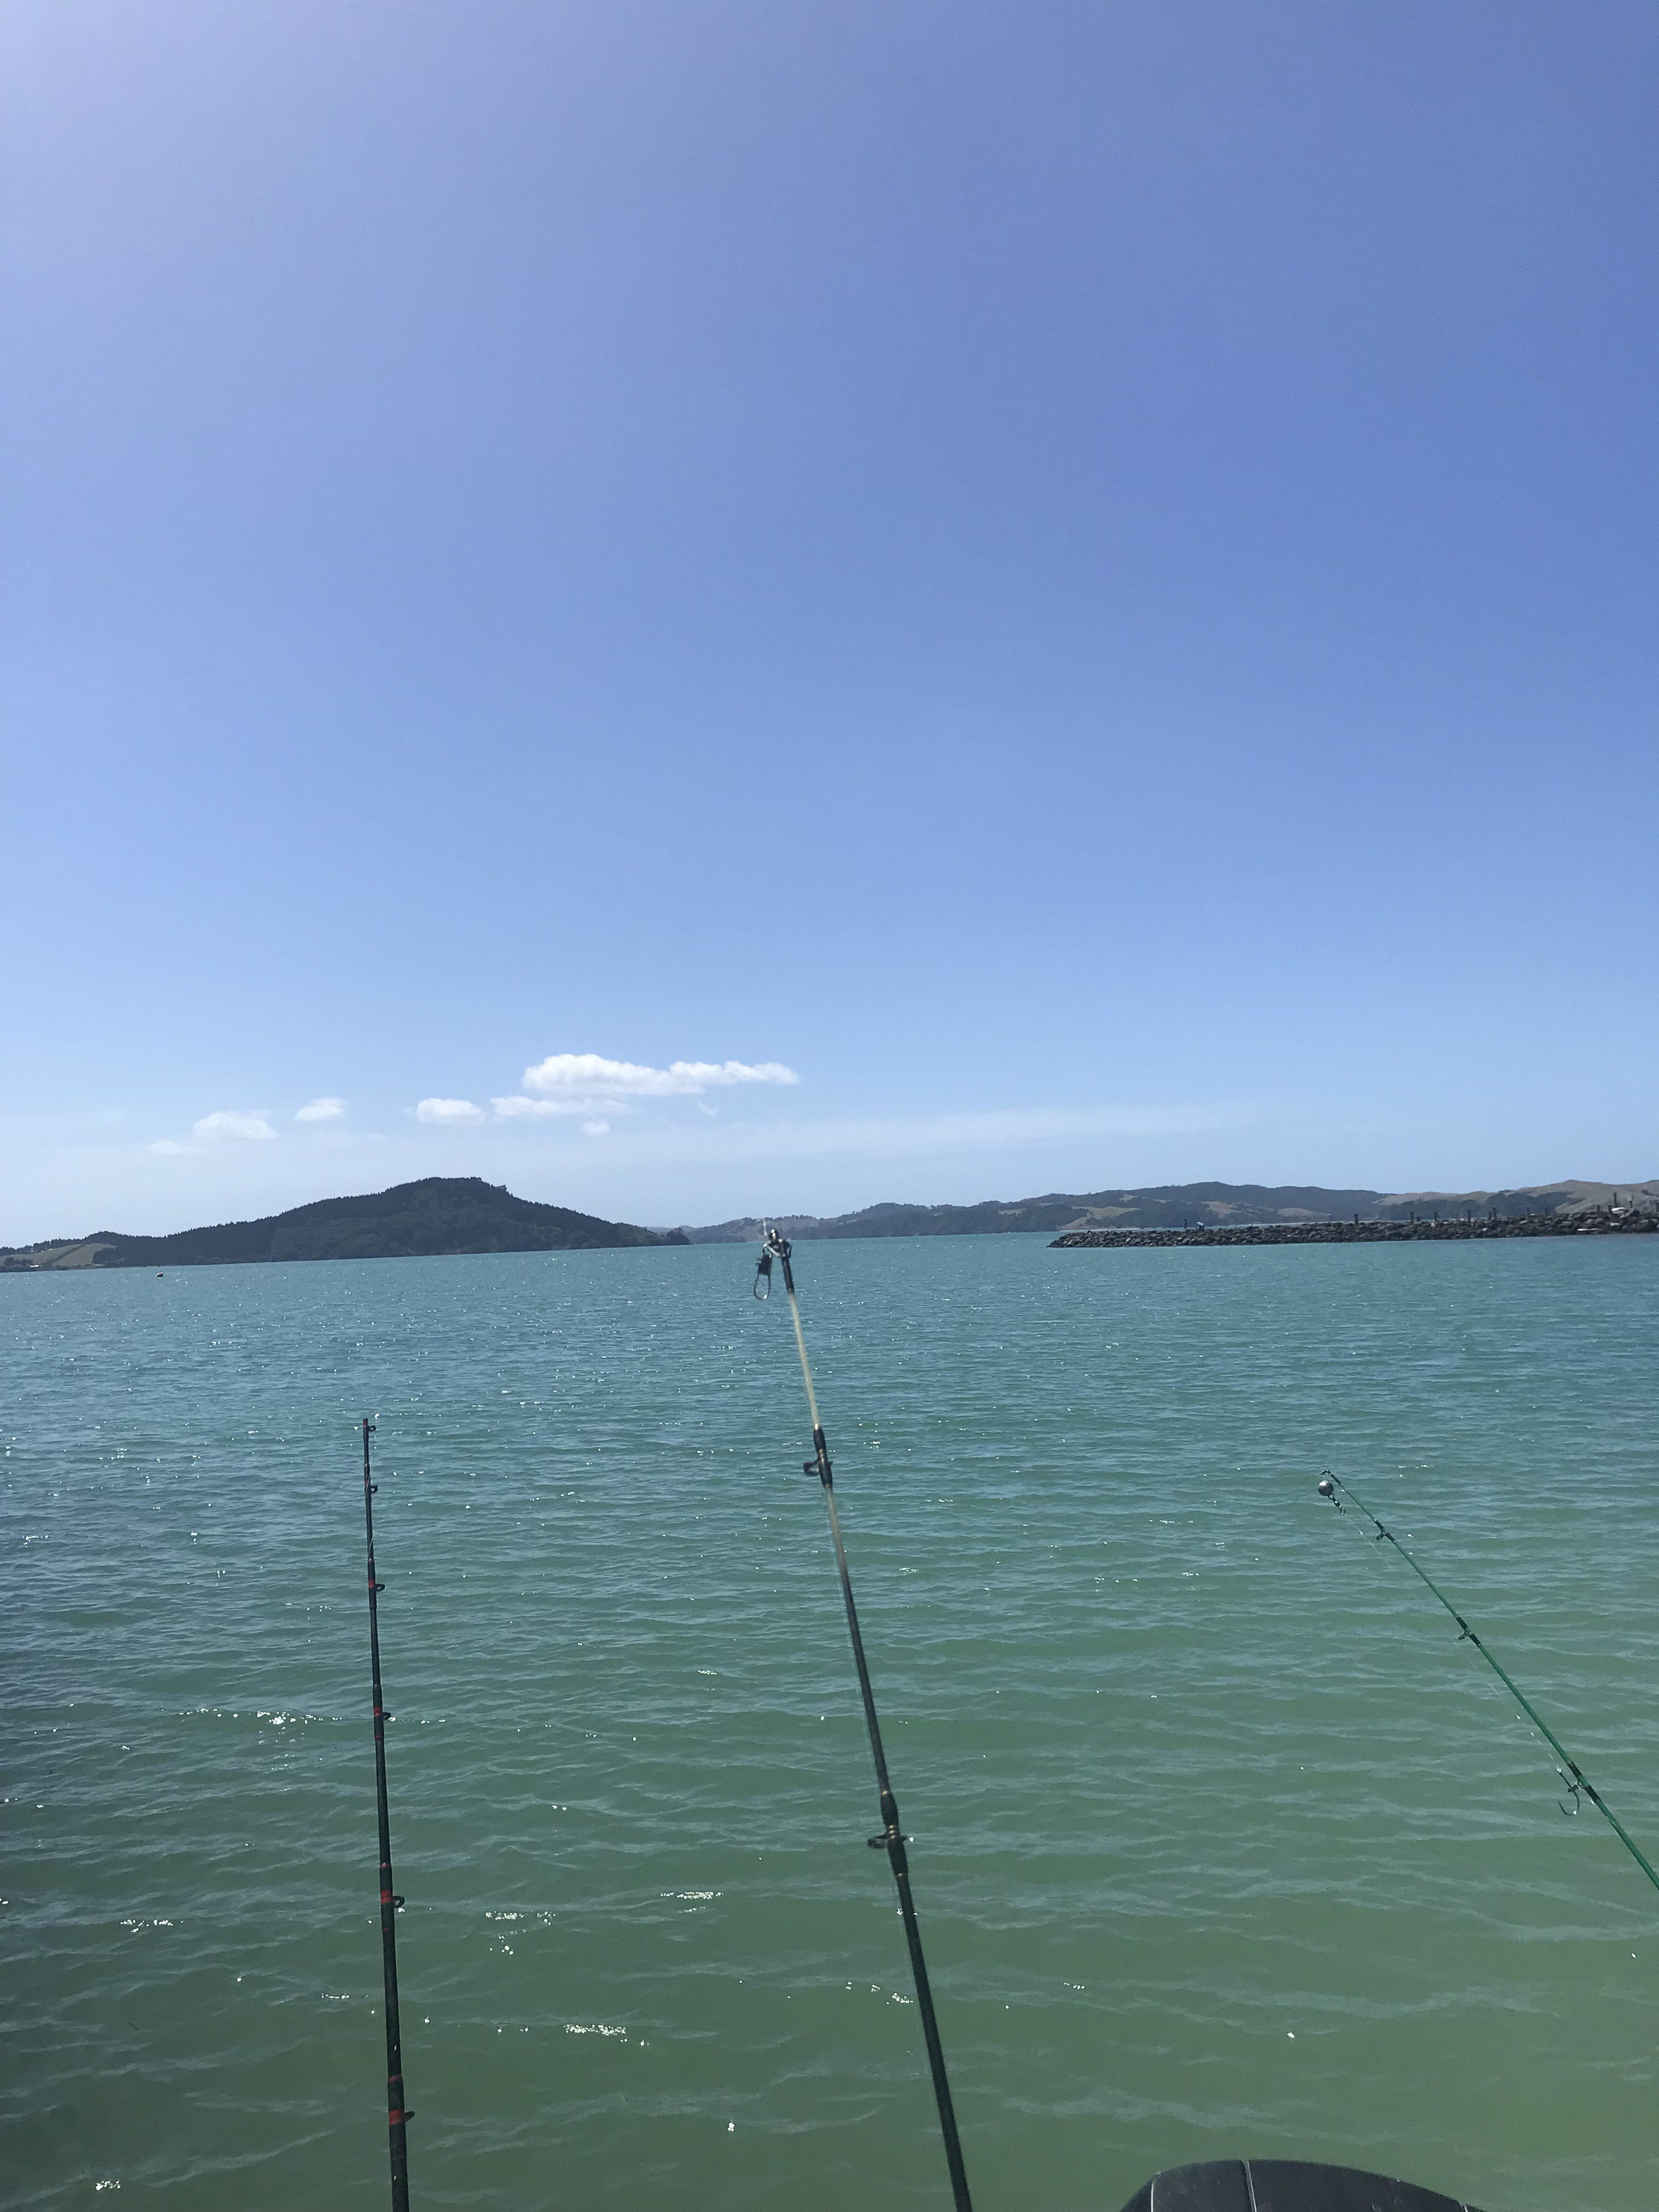 """My break was restful, enjoying time with family, our animals and in the garden, did manage a lovely day on the Hauraki for a fish which was a success. Great Kiwi Summer was enjoyed""  - Lara"